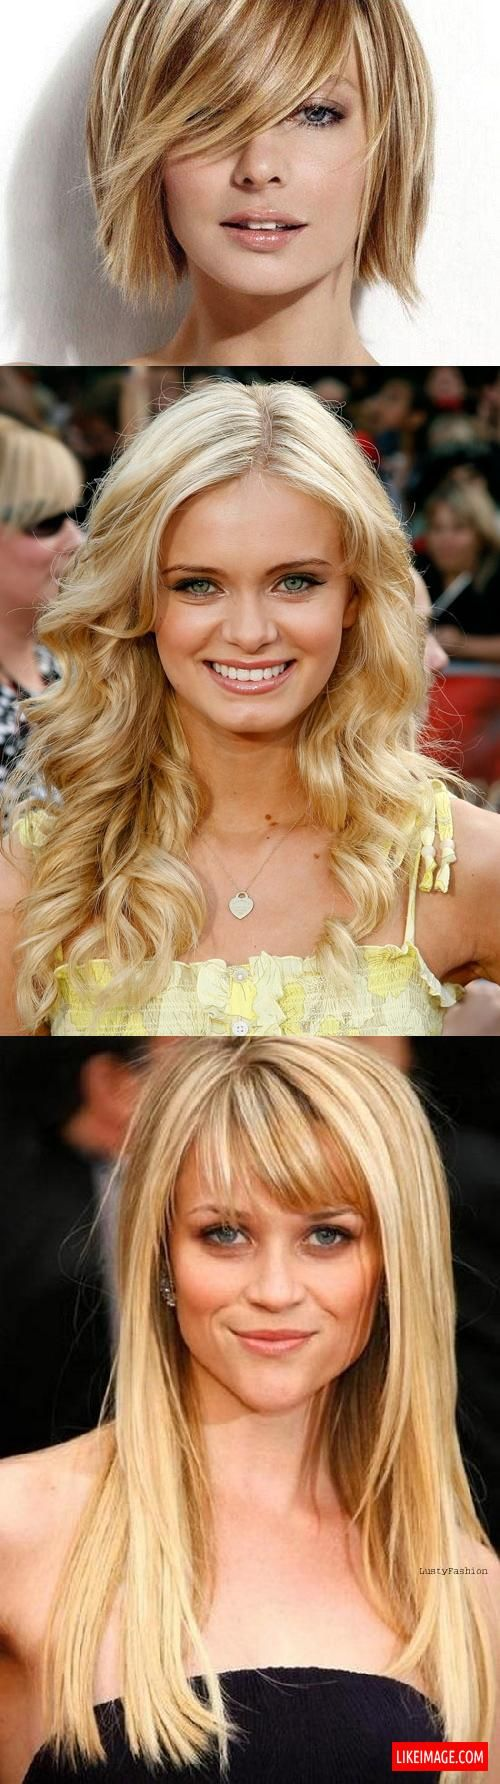 Blonde hairstyles - 8 PHOTO!